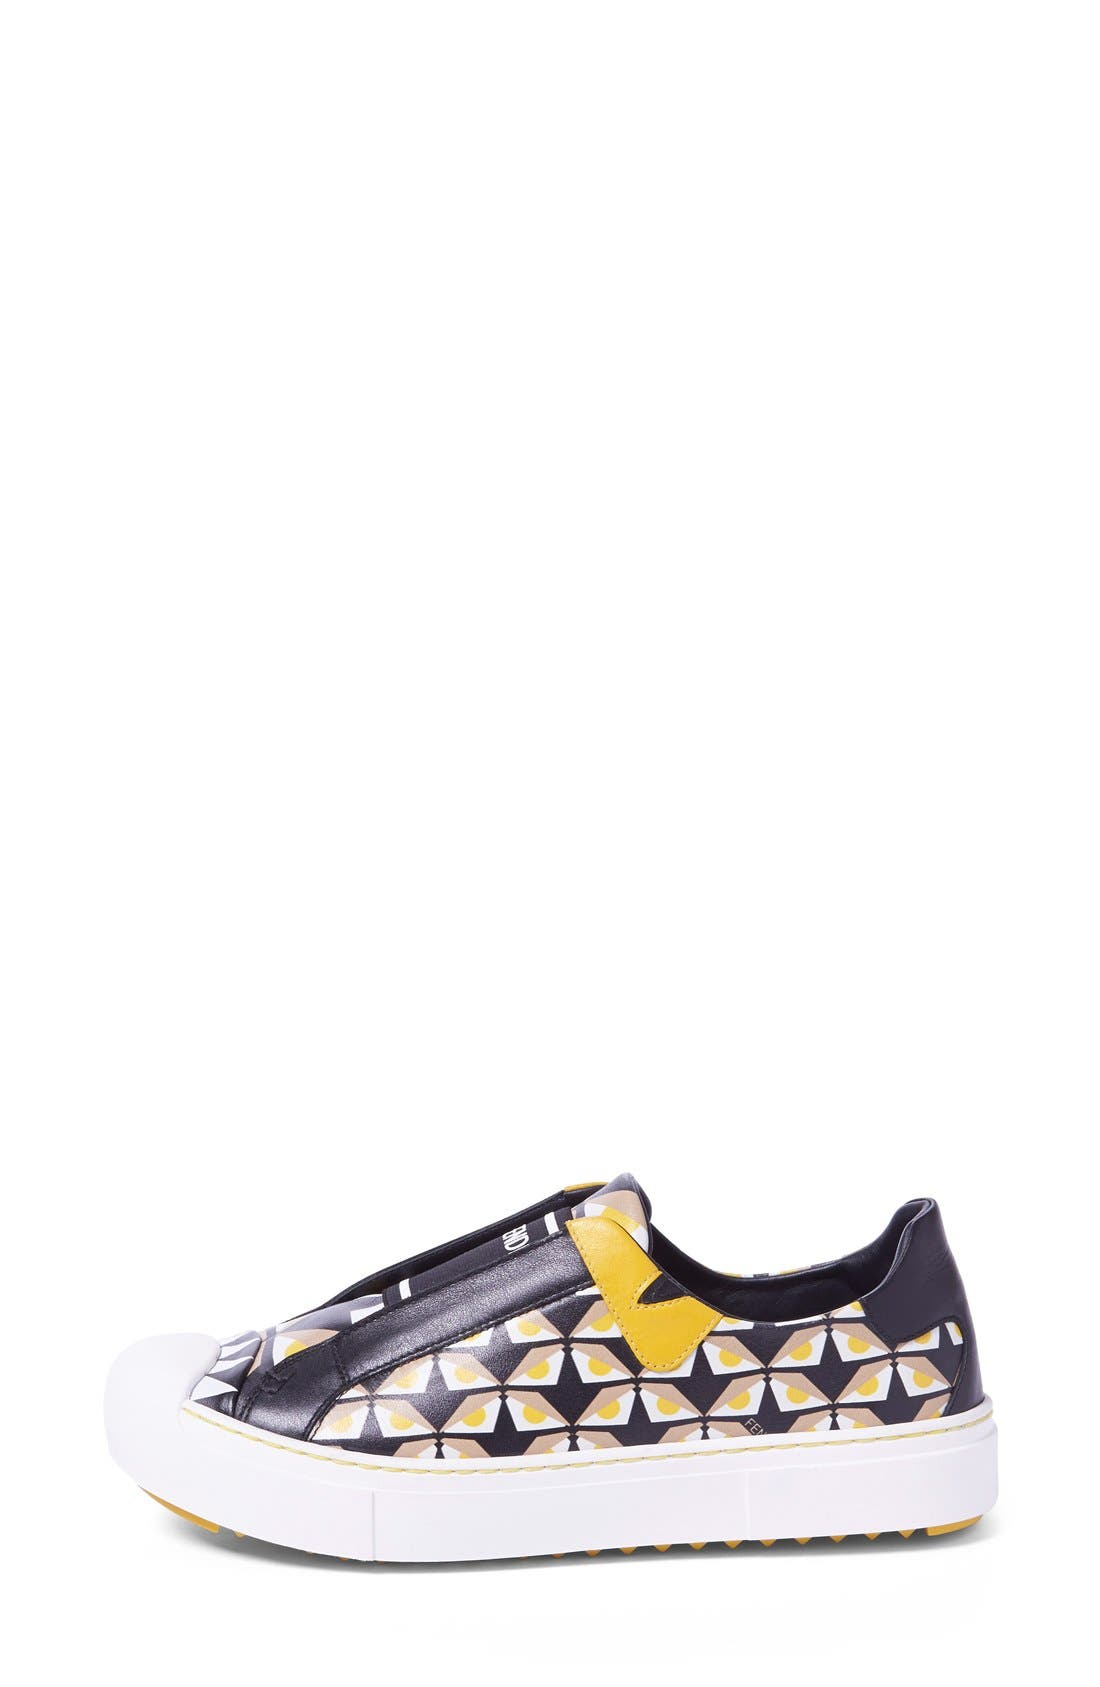 Alternate Image 3  - Fendi 'Bugs' Slip-On Sneaker (Women)